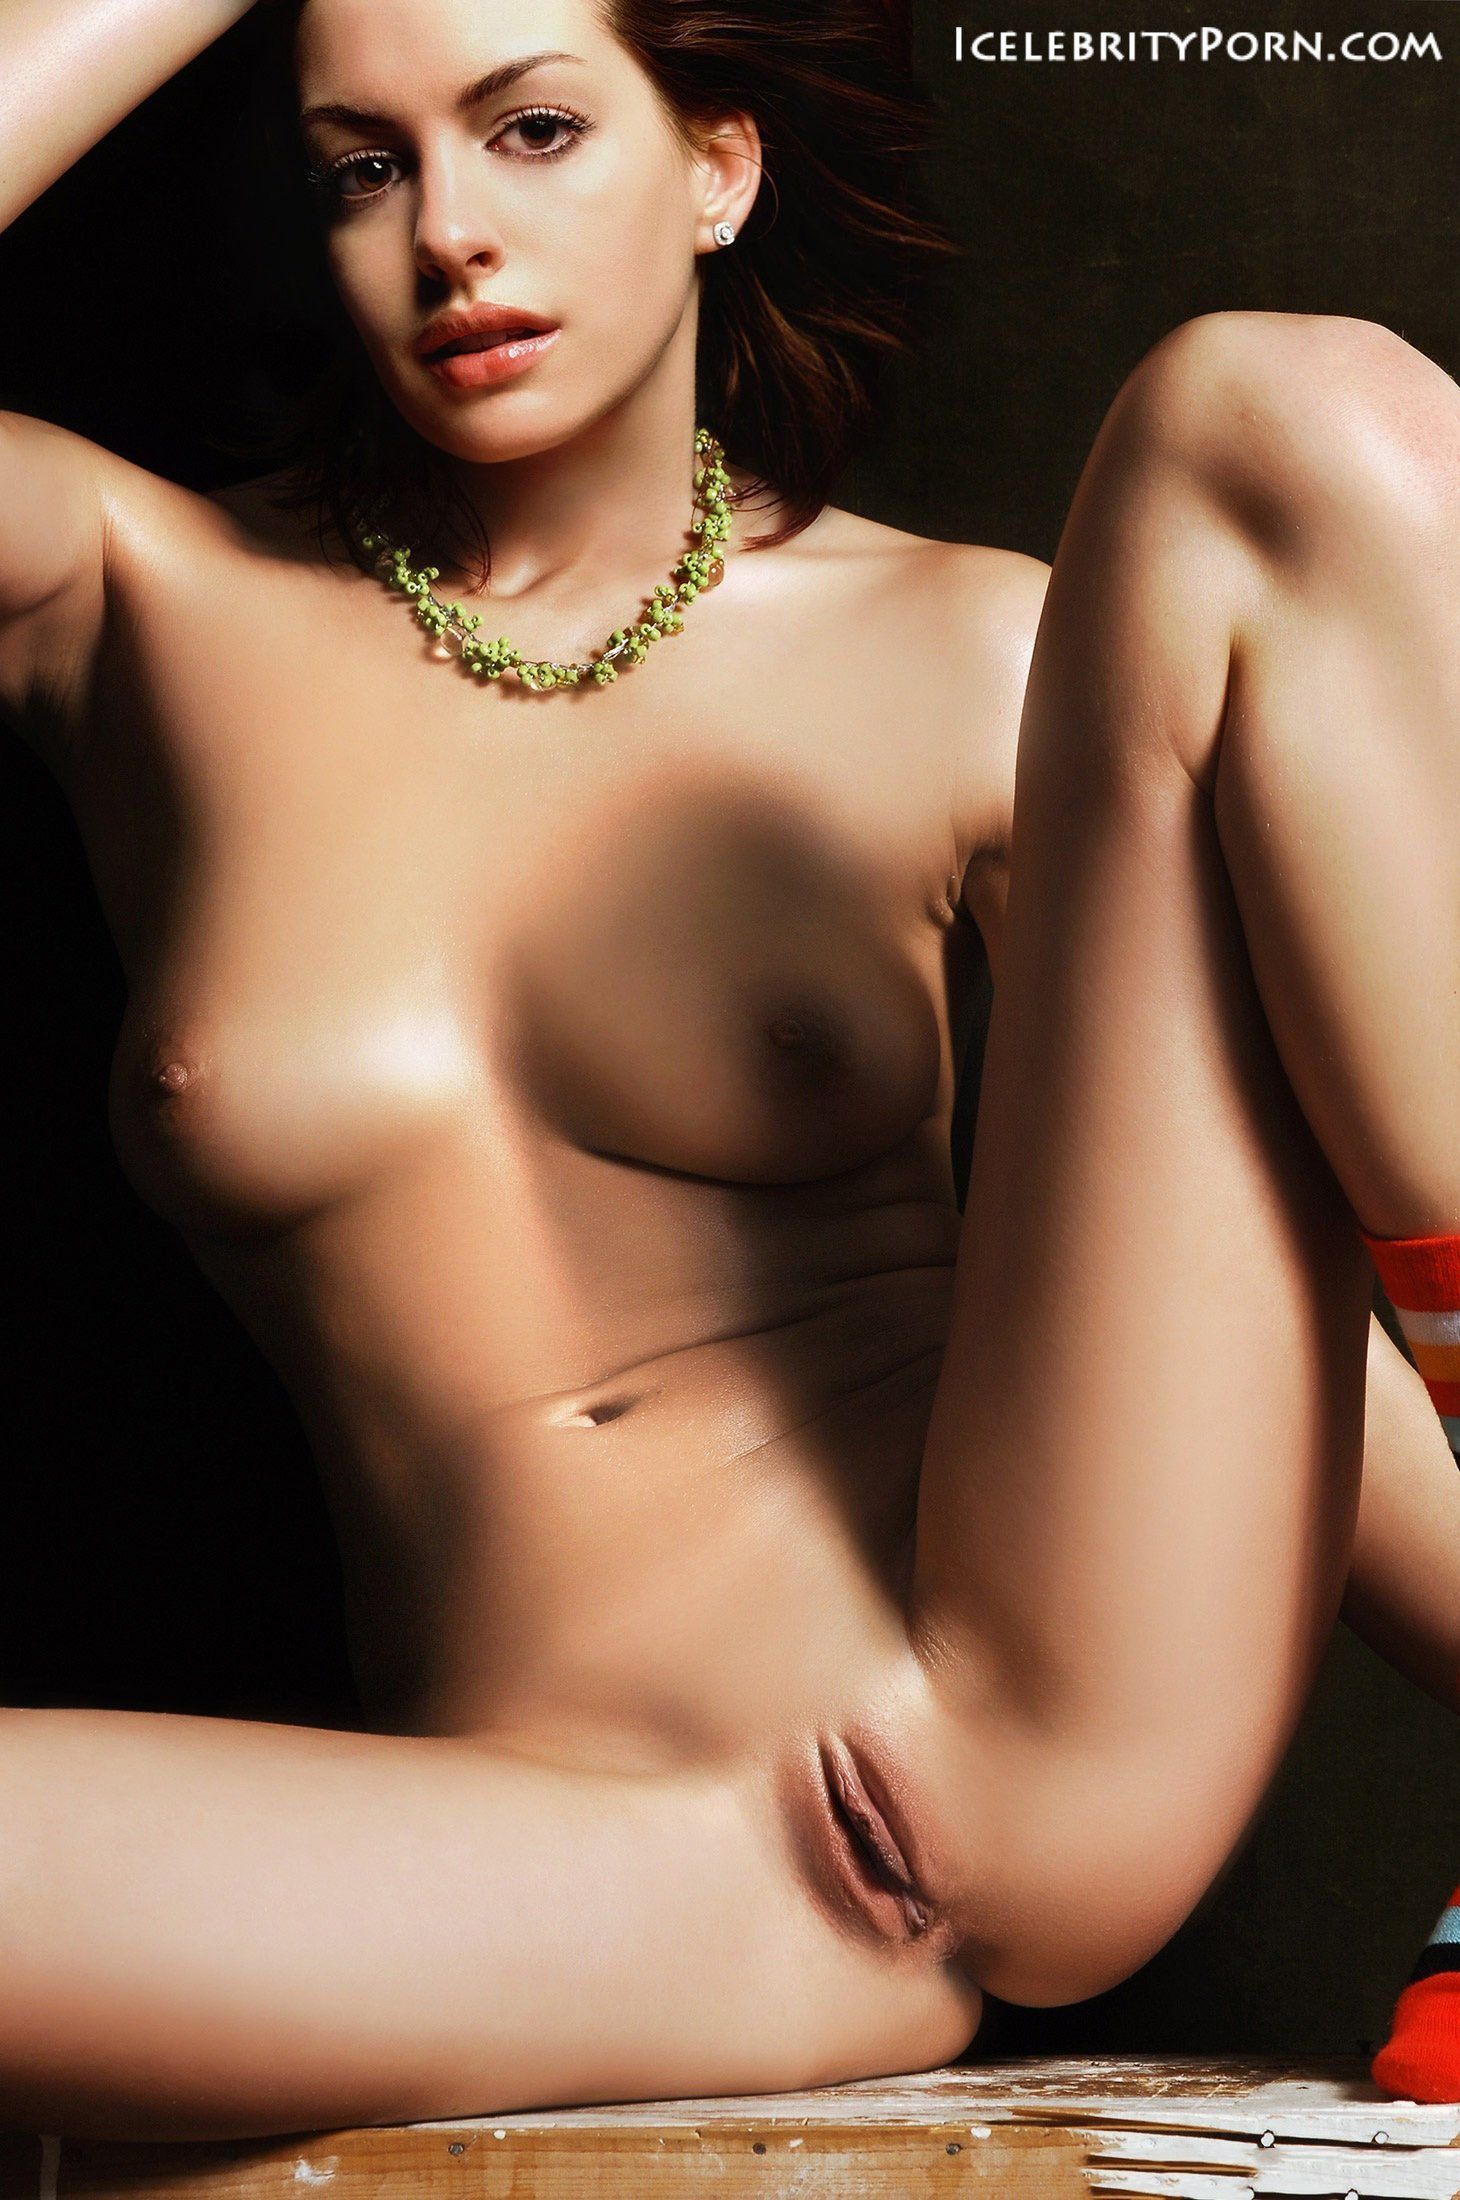 Anne Hathaway Porno video of anne hathaway naked . xxx sex photos. comments: 1